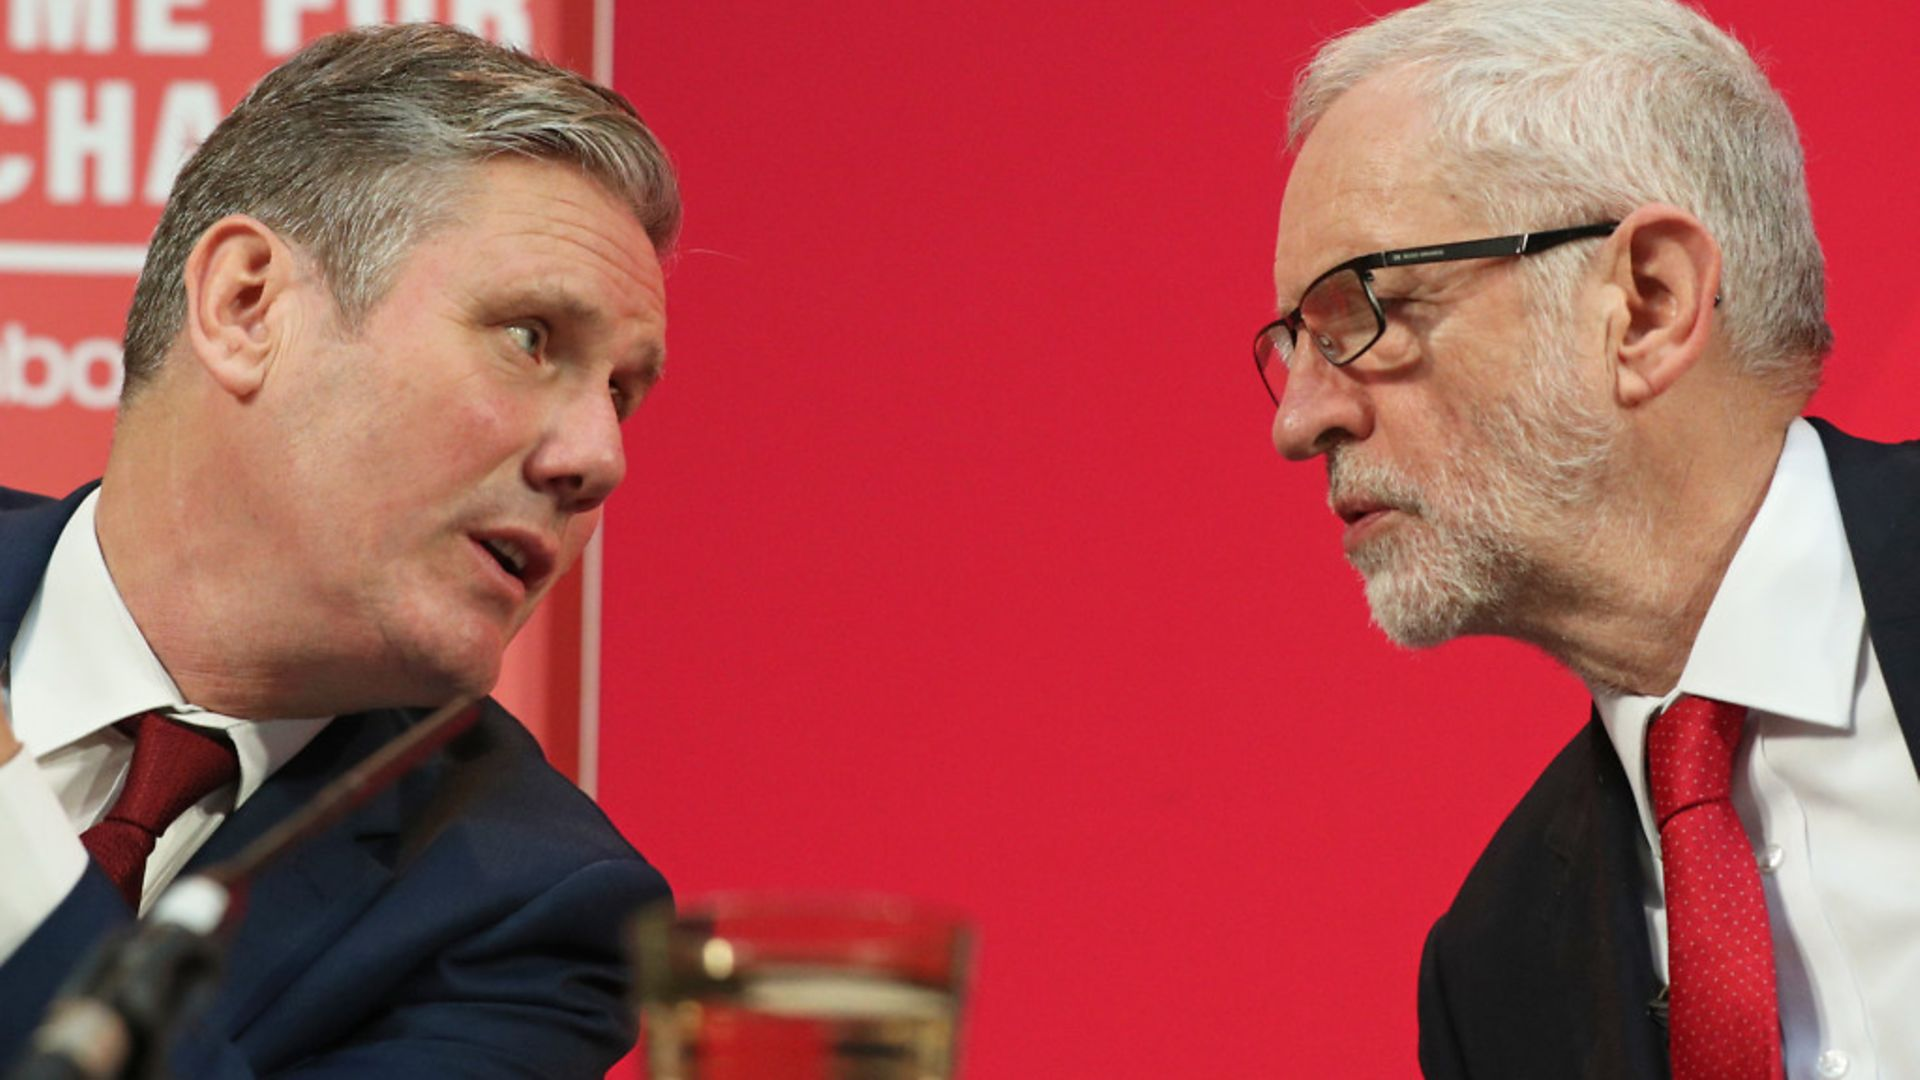 Then Labour Party leader Jeremy Corbyn, alongside his shadow Brexit secretary Keir Starmer - Credit: PA Wire/PA Images